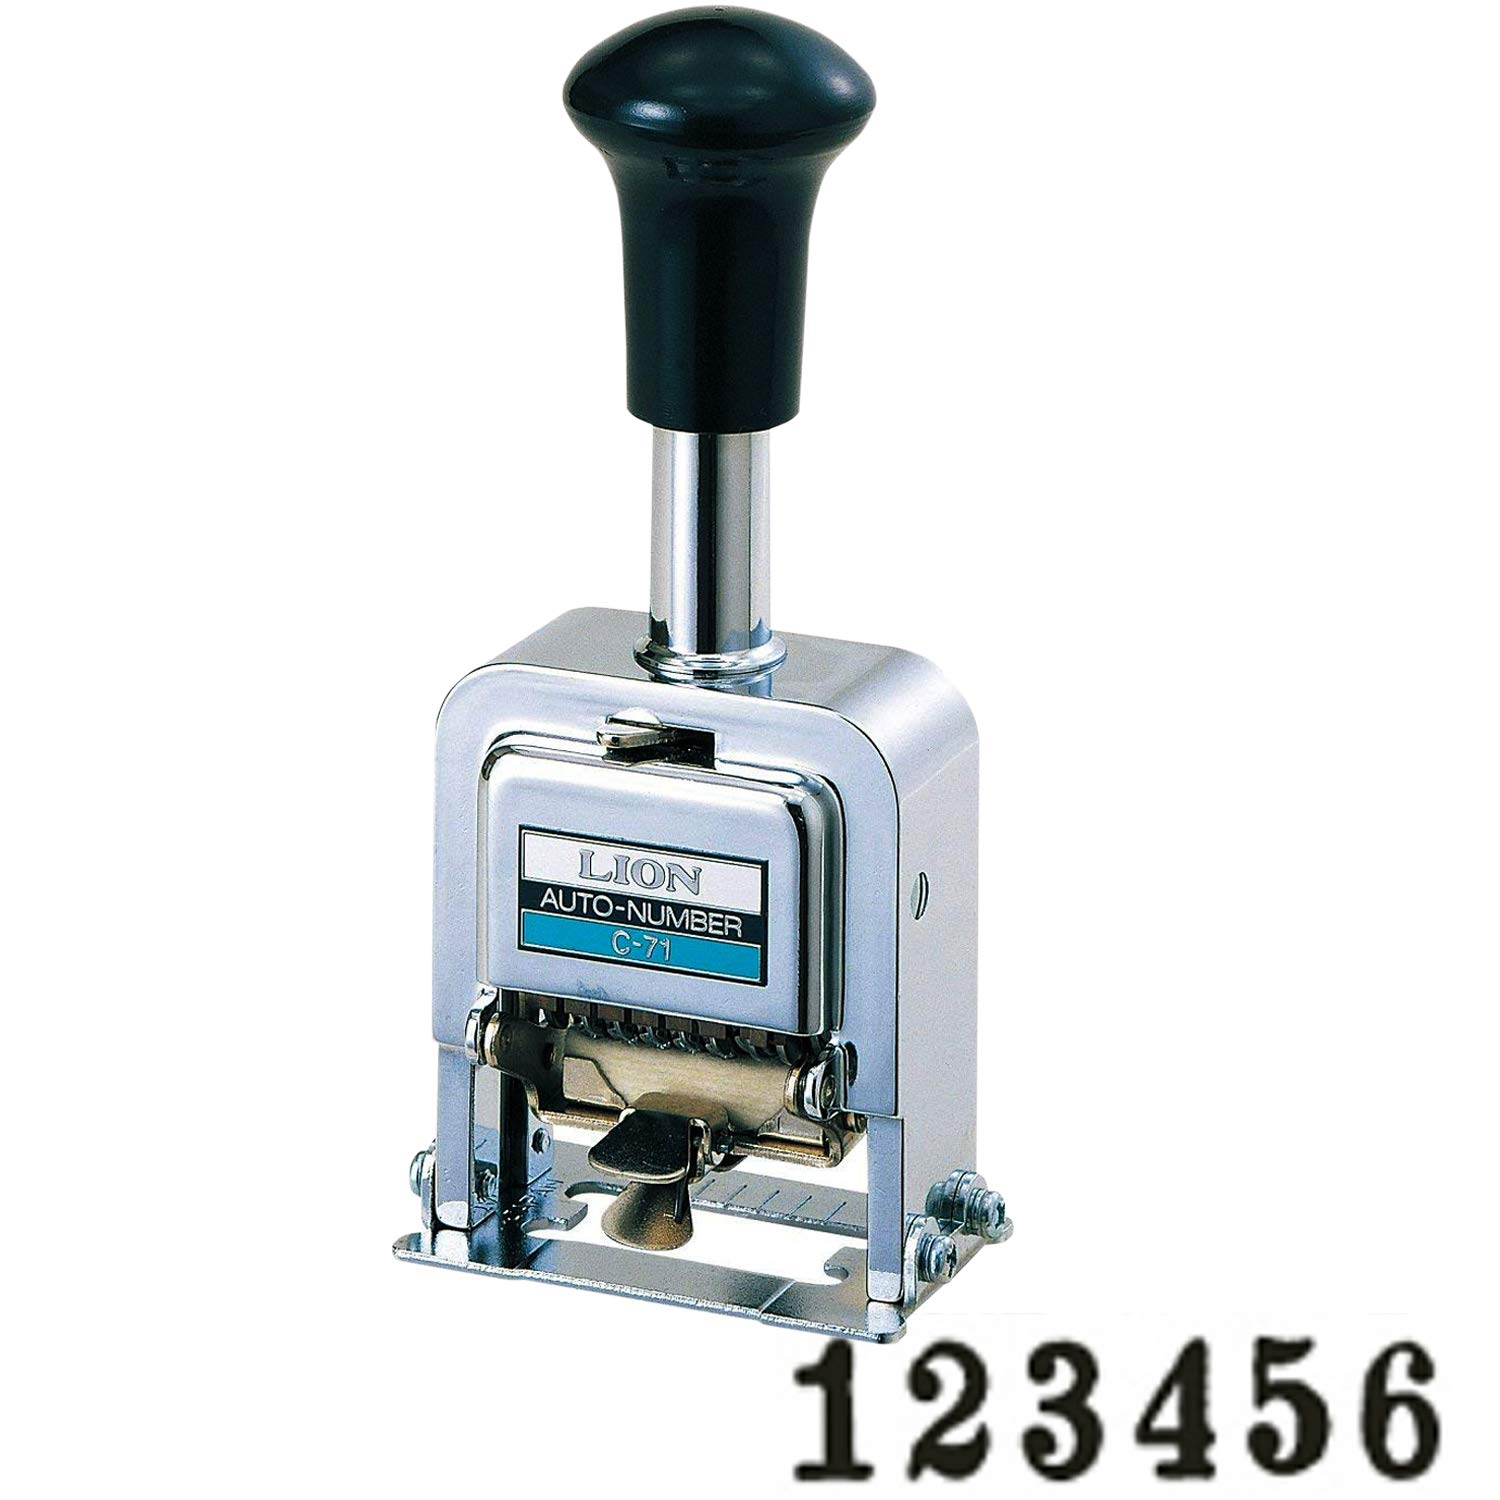 Lion Pro-Line Heavy-Duty Automatic Numbering Machine, 6-Wheel, Roman, 1 Numbering Machine (C-71) by Lion